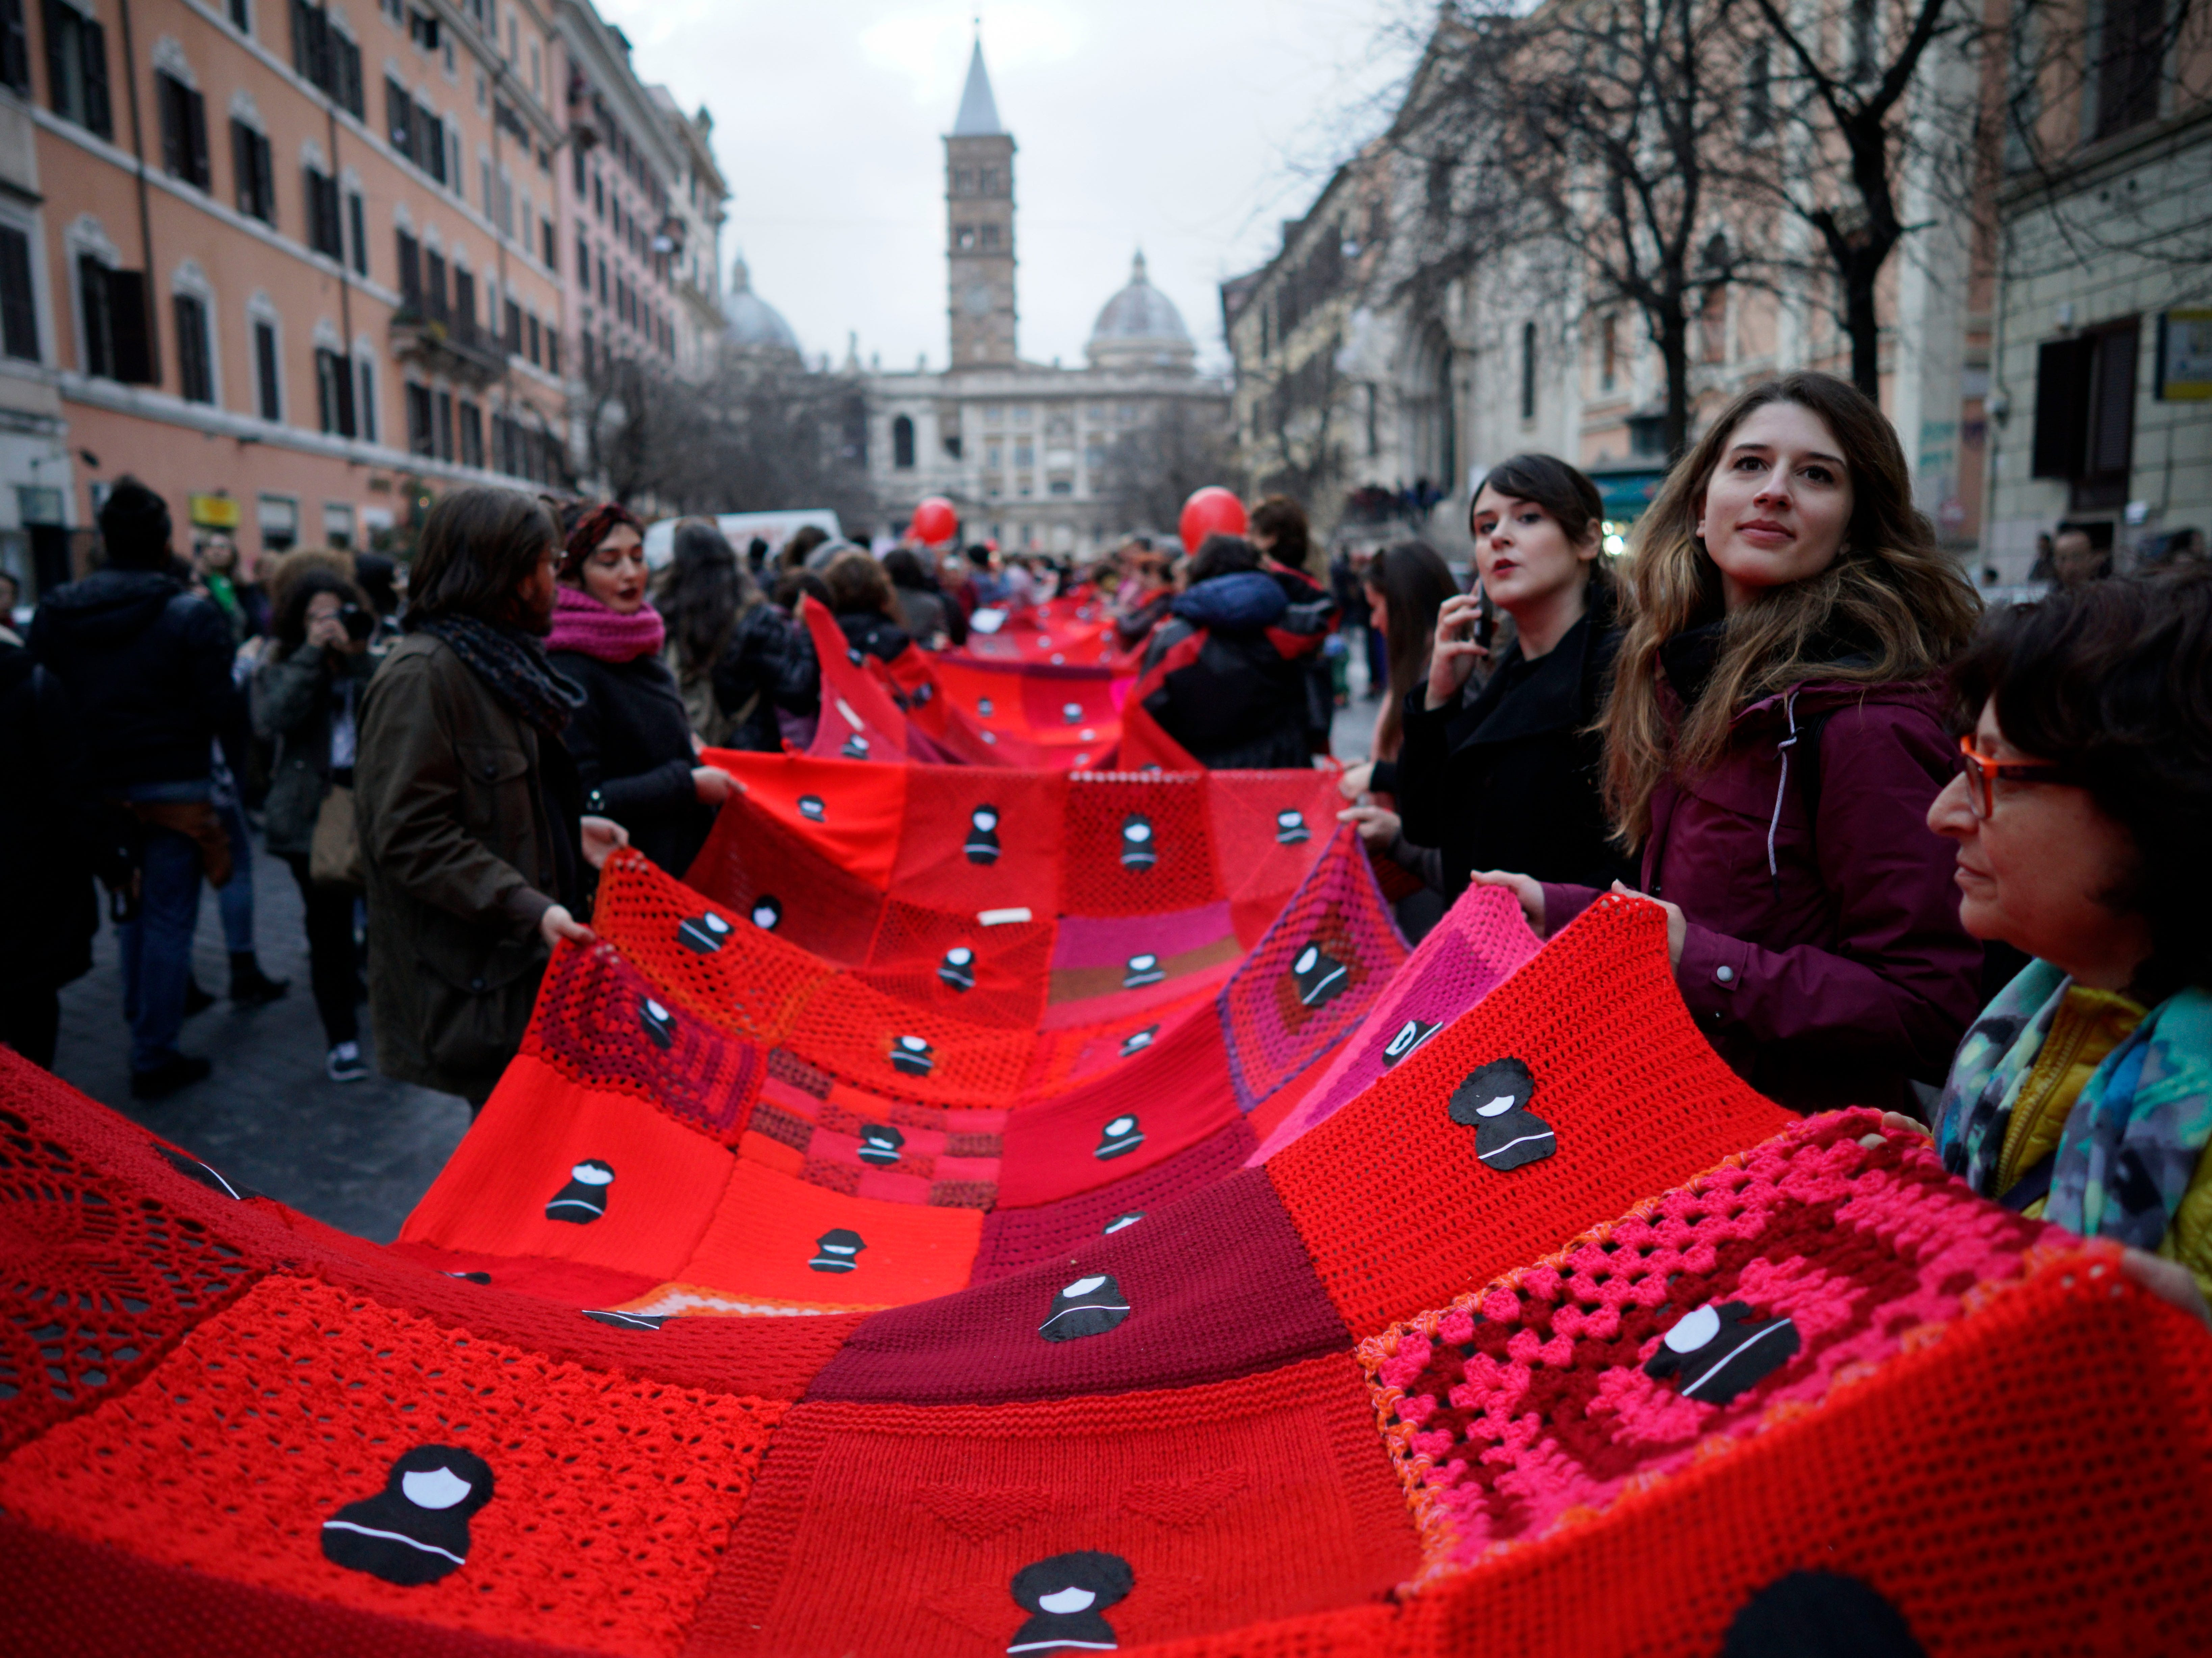 People take part in a demonstration to mark the International Women's Day, in Rome, Friday, March 8, 2019. The day, sponsored by the United Nations since 1975, celebrates women's achievements and aims to further their rights. (AP Photo/Andrew Medichini)